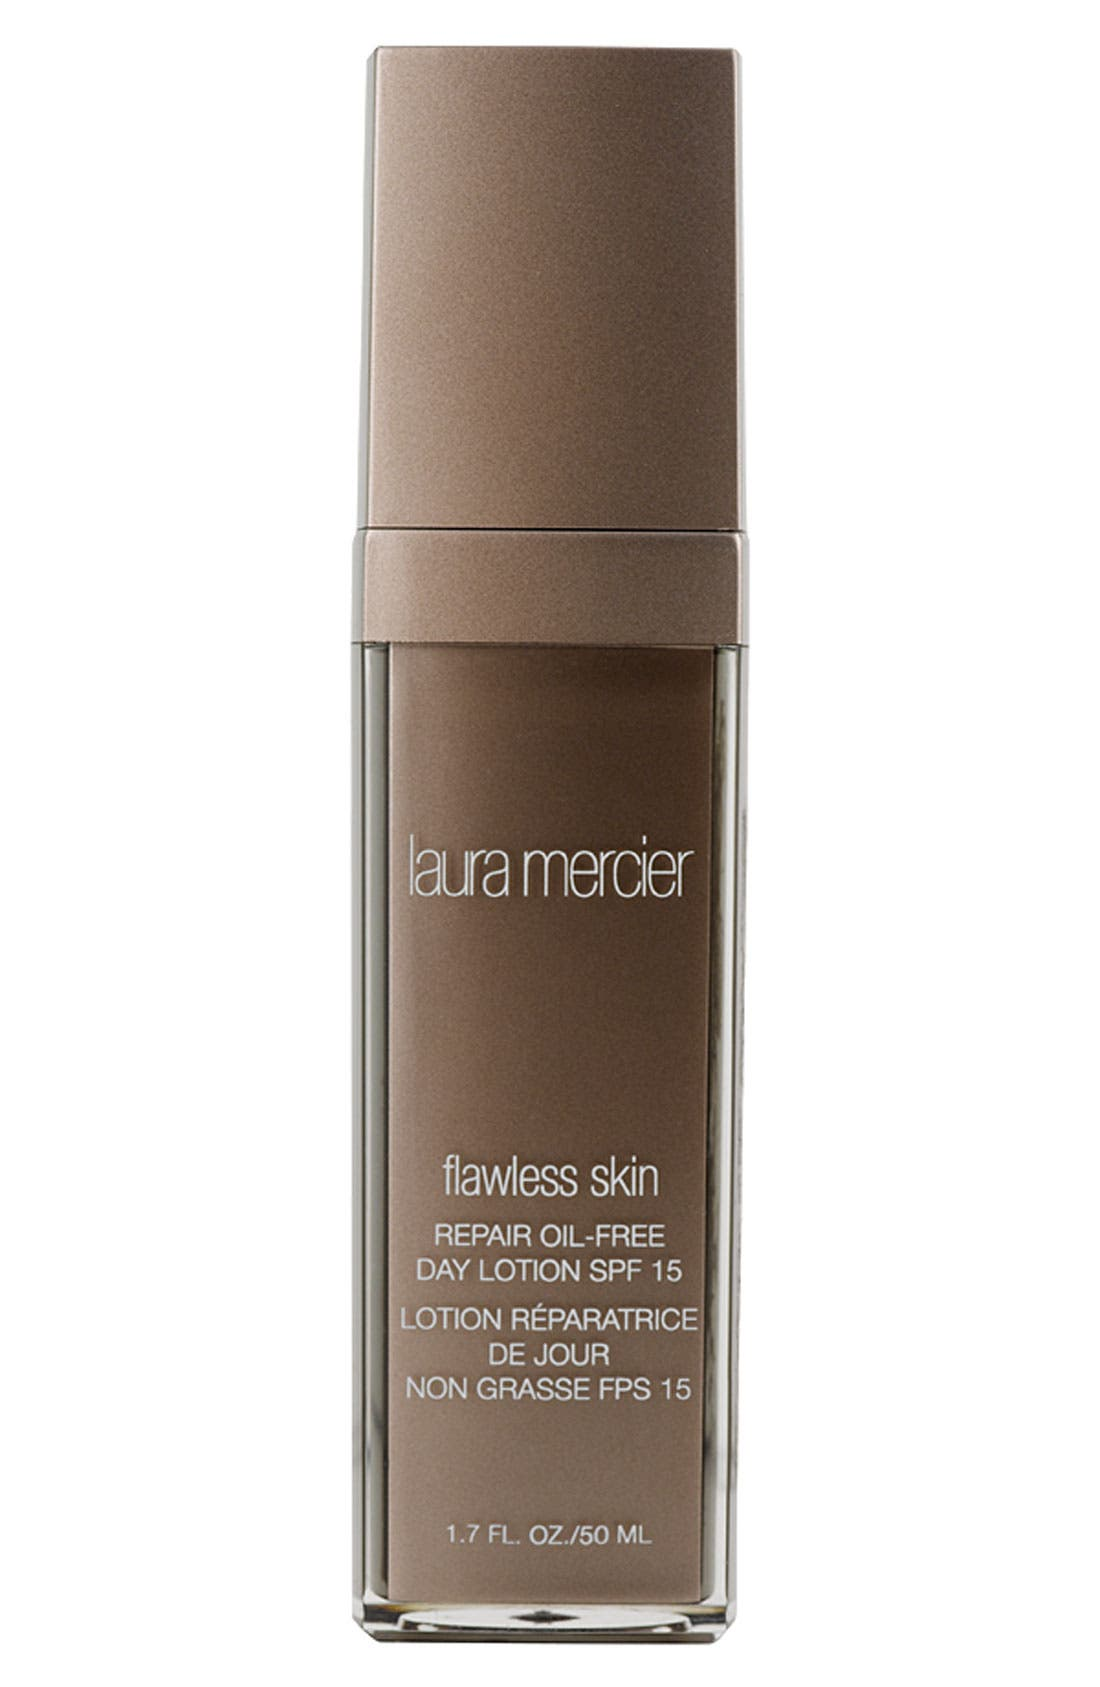 Laura Mercier 'Flawless Skin Repair' Oil-Free Day Lotion SPF 15